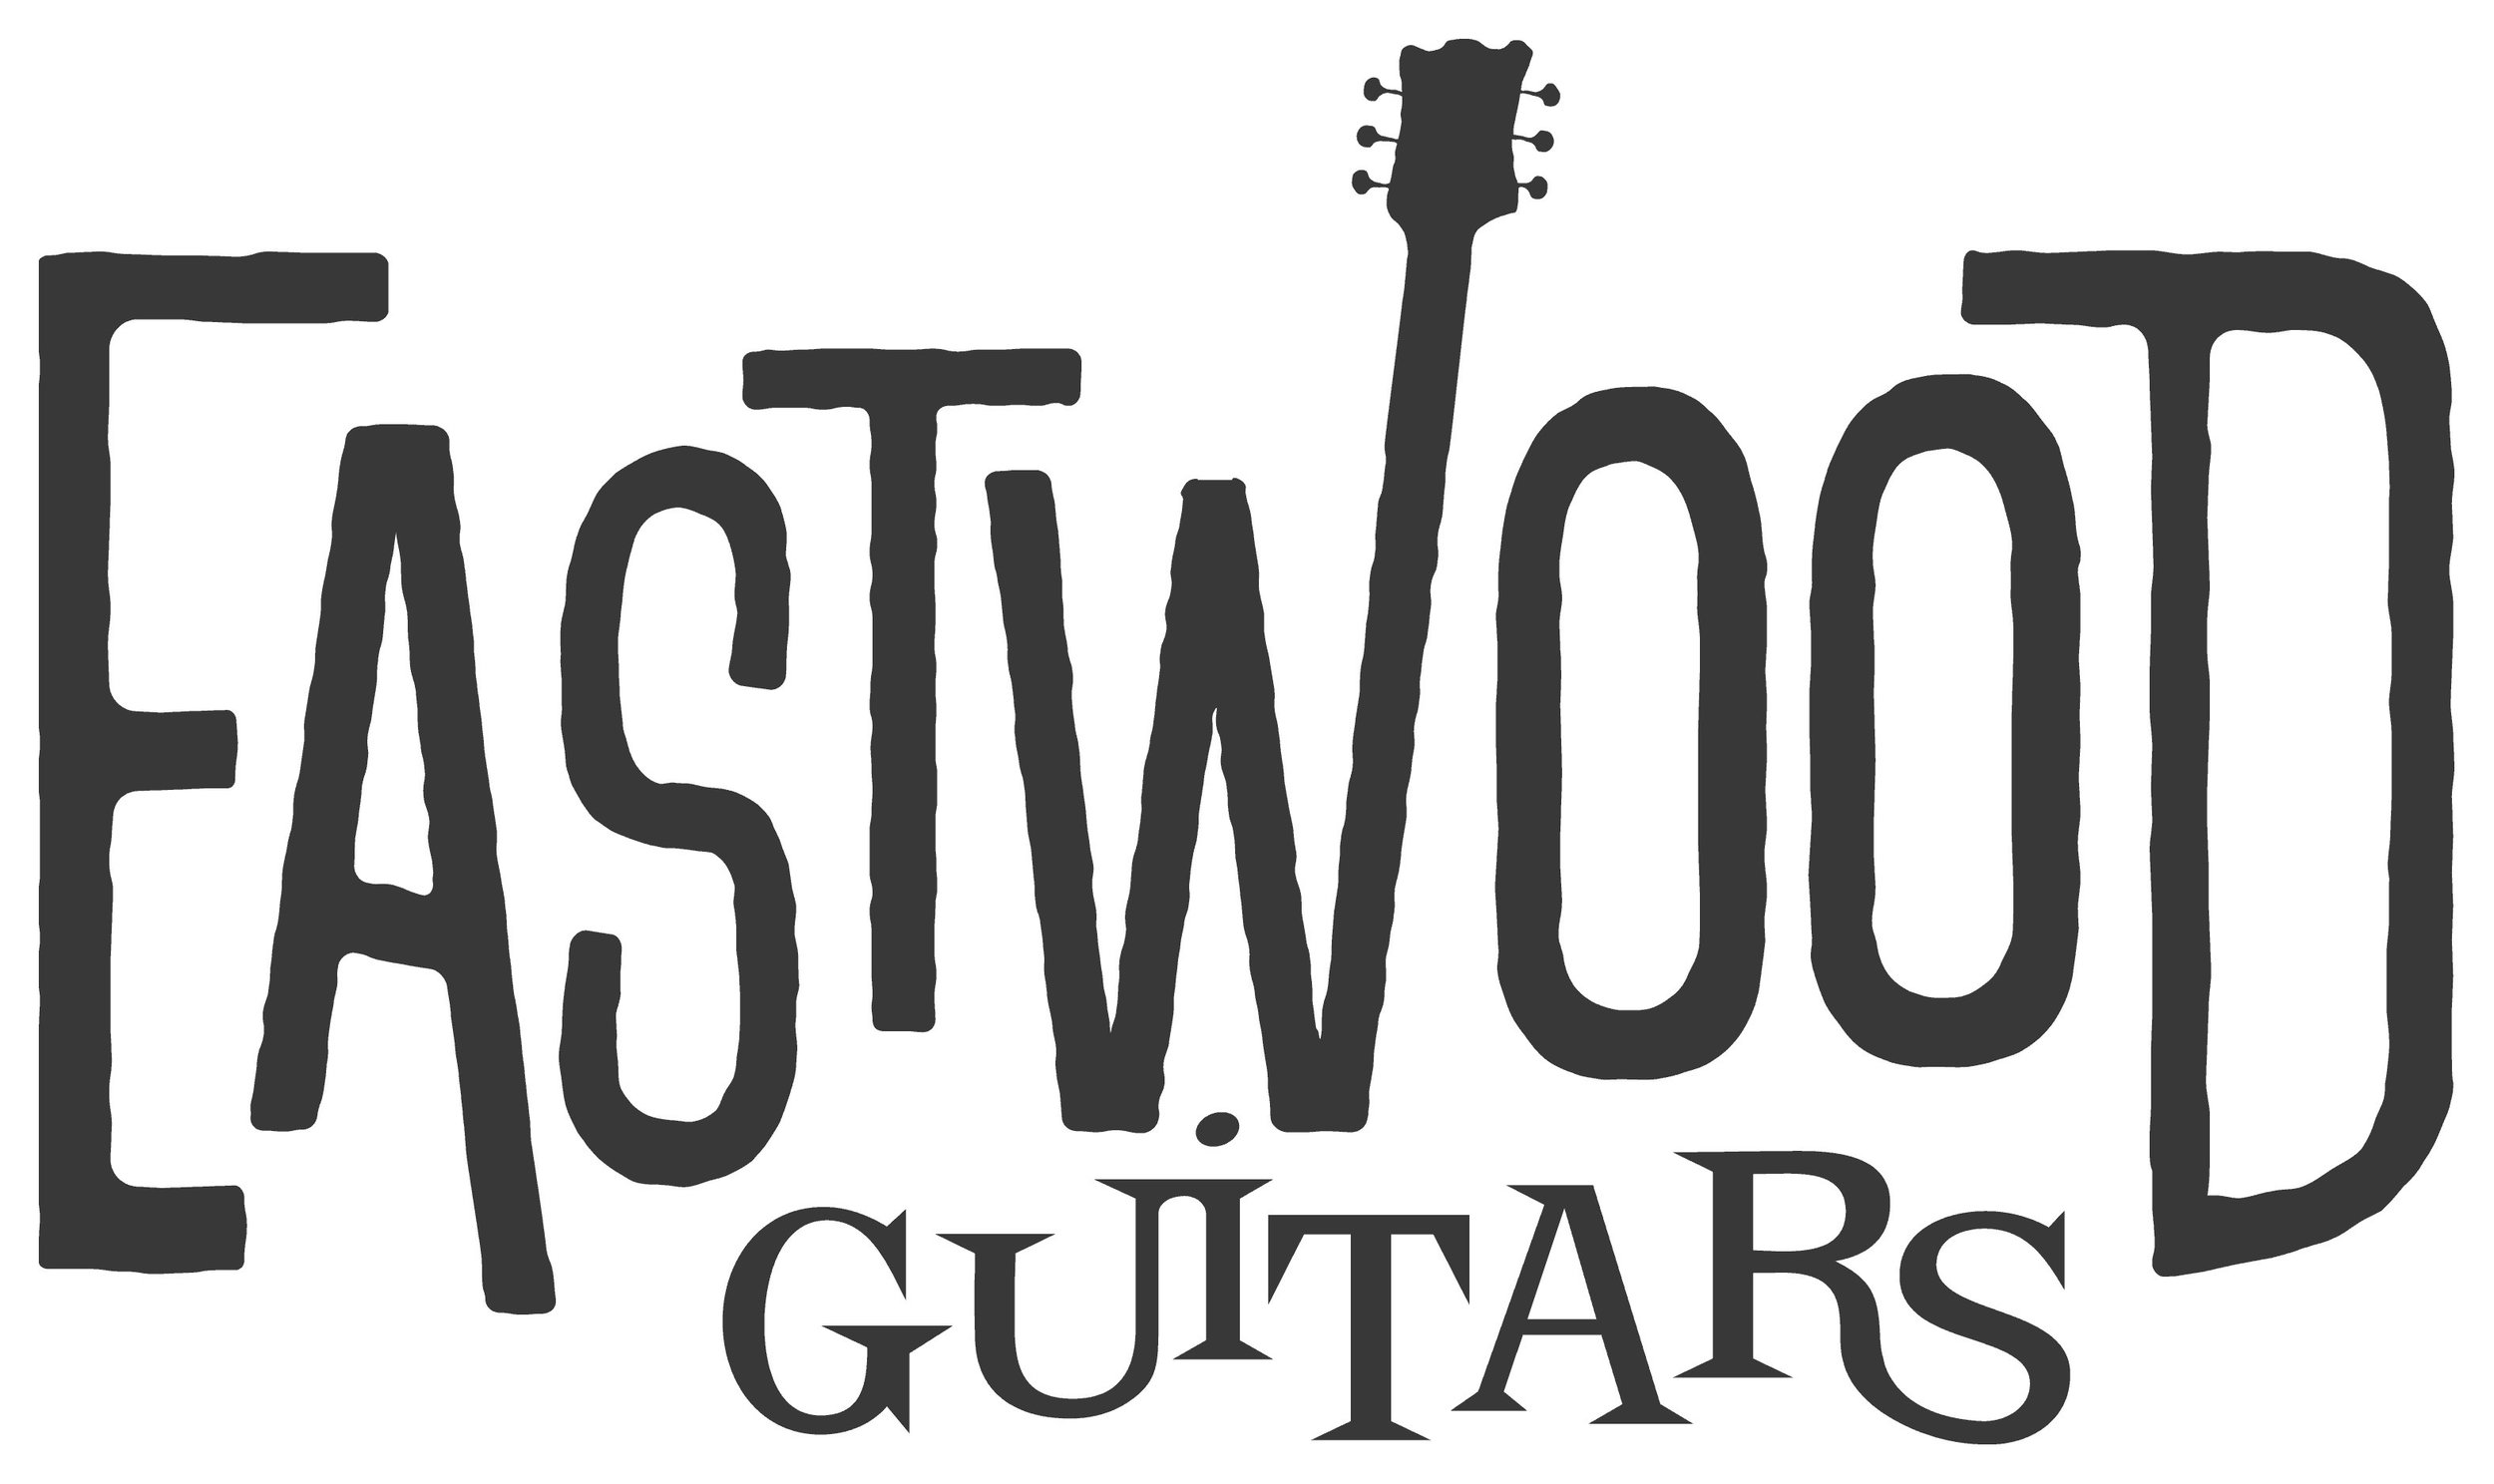 Eastwood Guitars.jpg